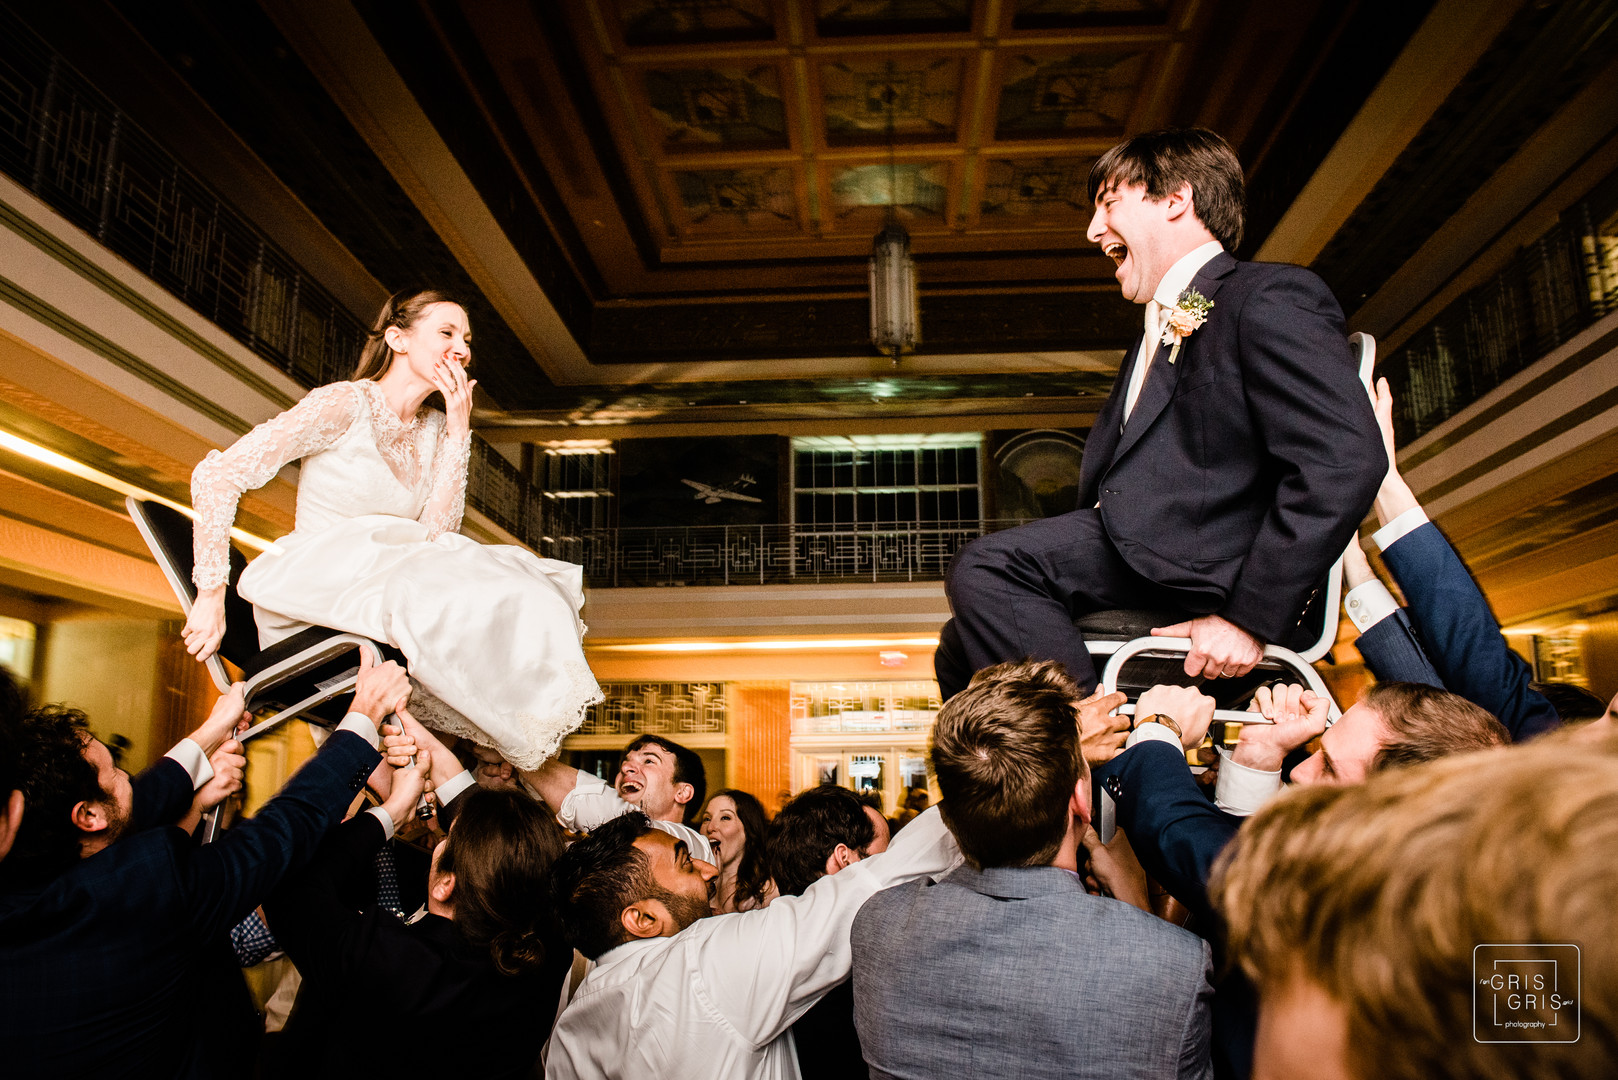 Bride and groom hora dance durring their reception at the lakefront airport